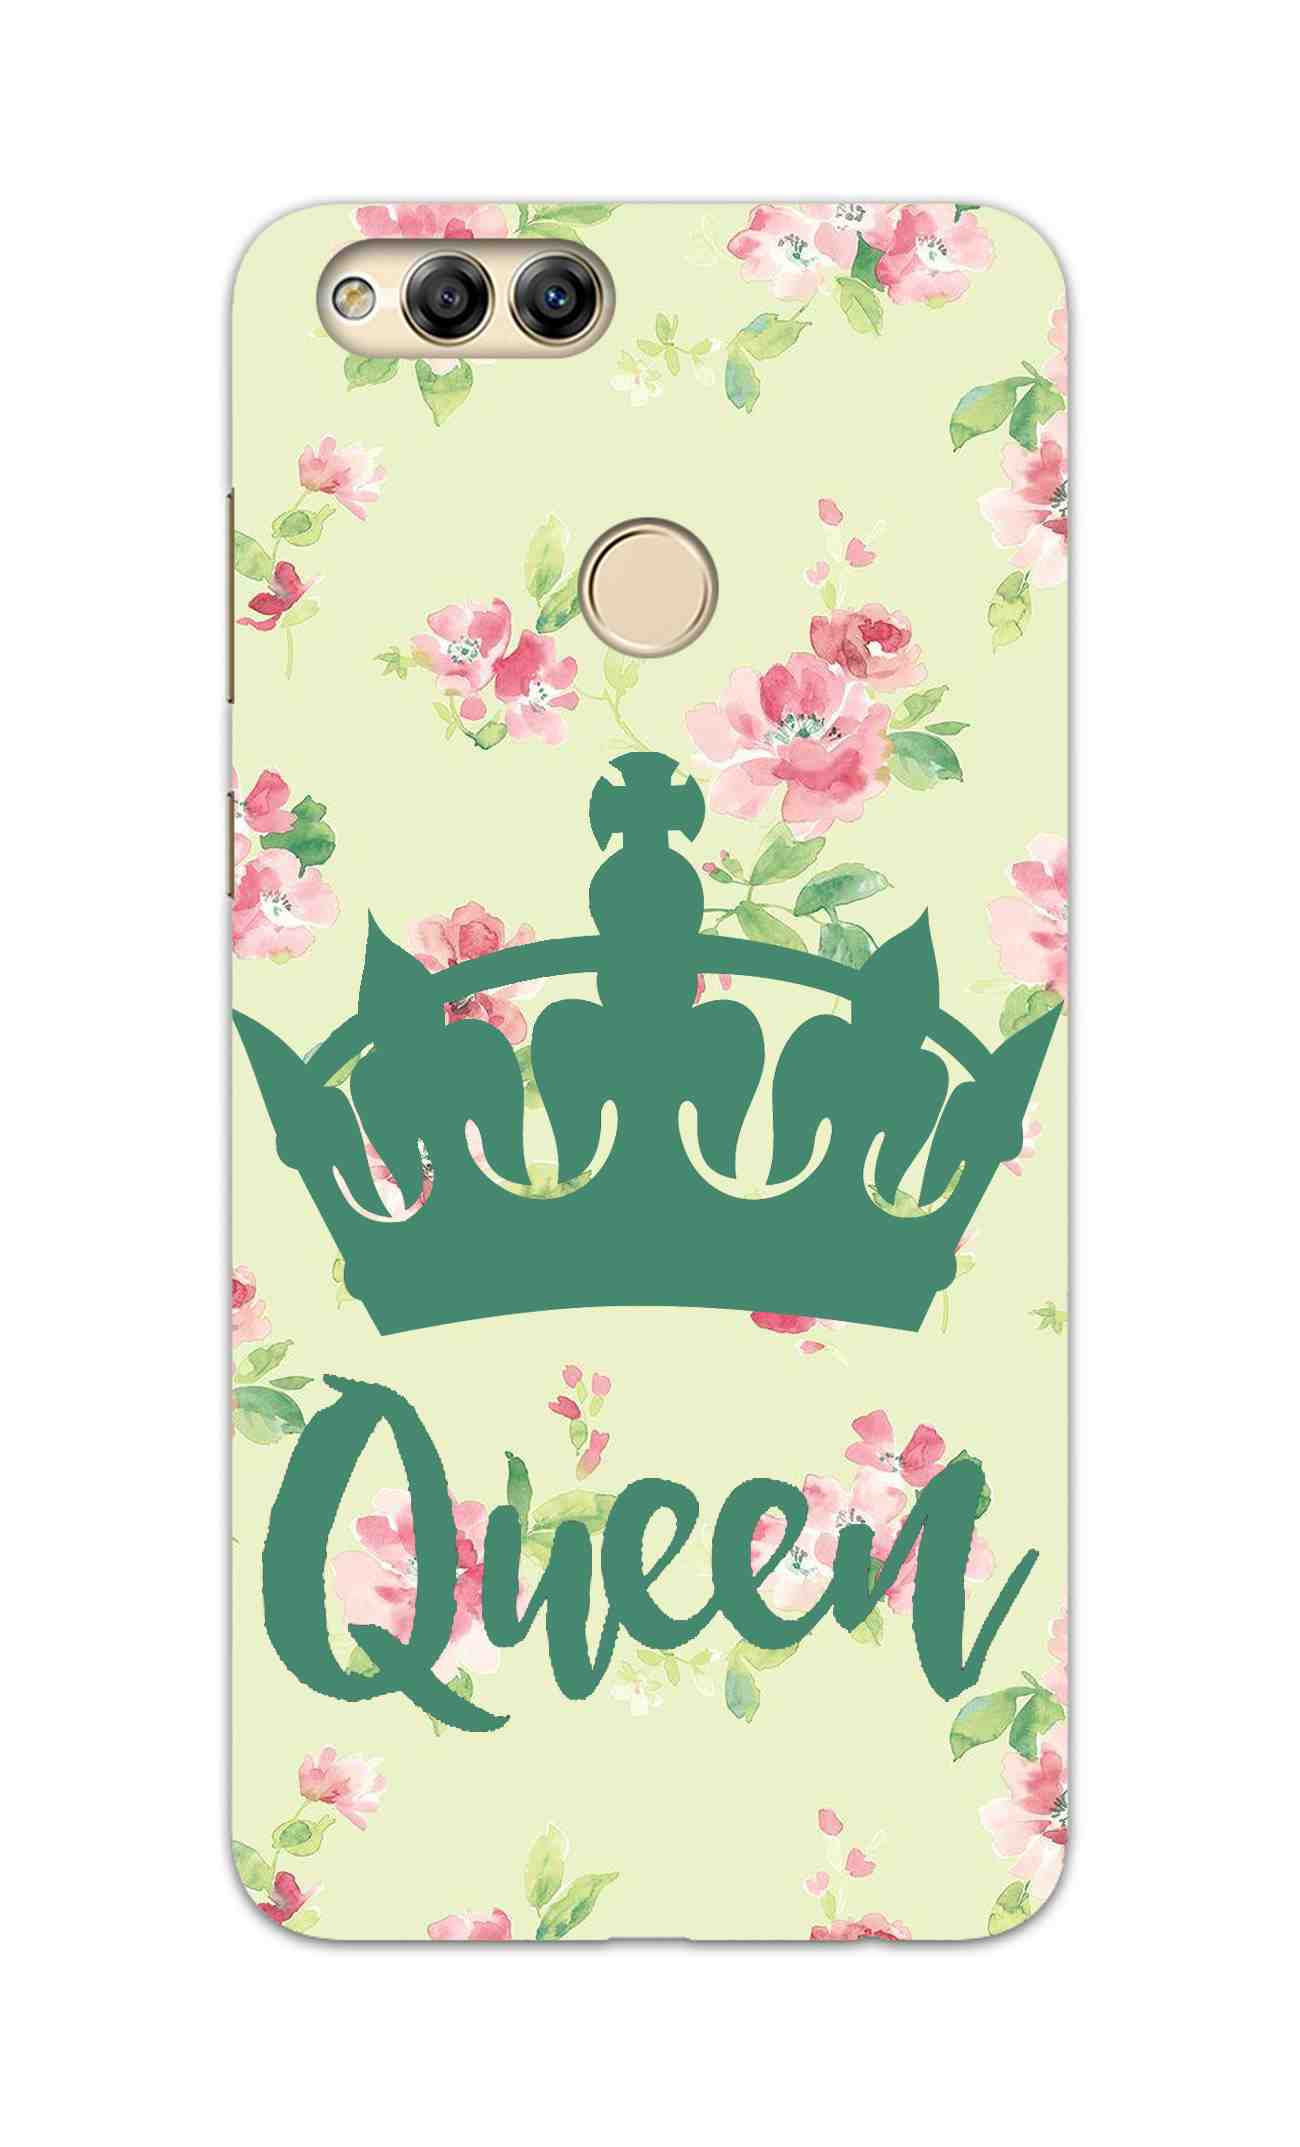 Floral Queen Pattern So Girly Honor 7X Mobile Cover Case